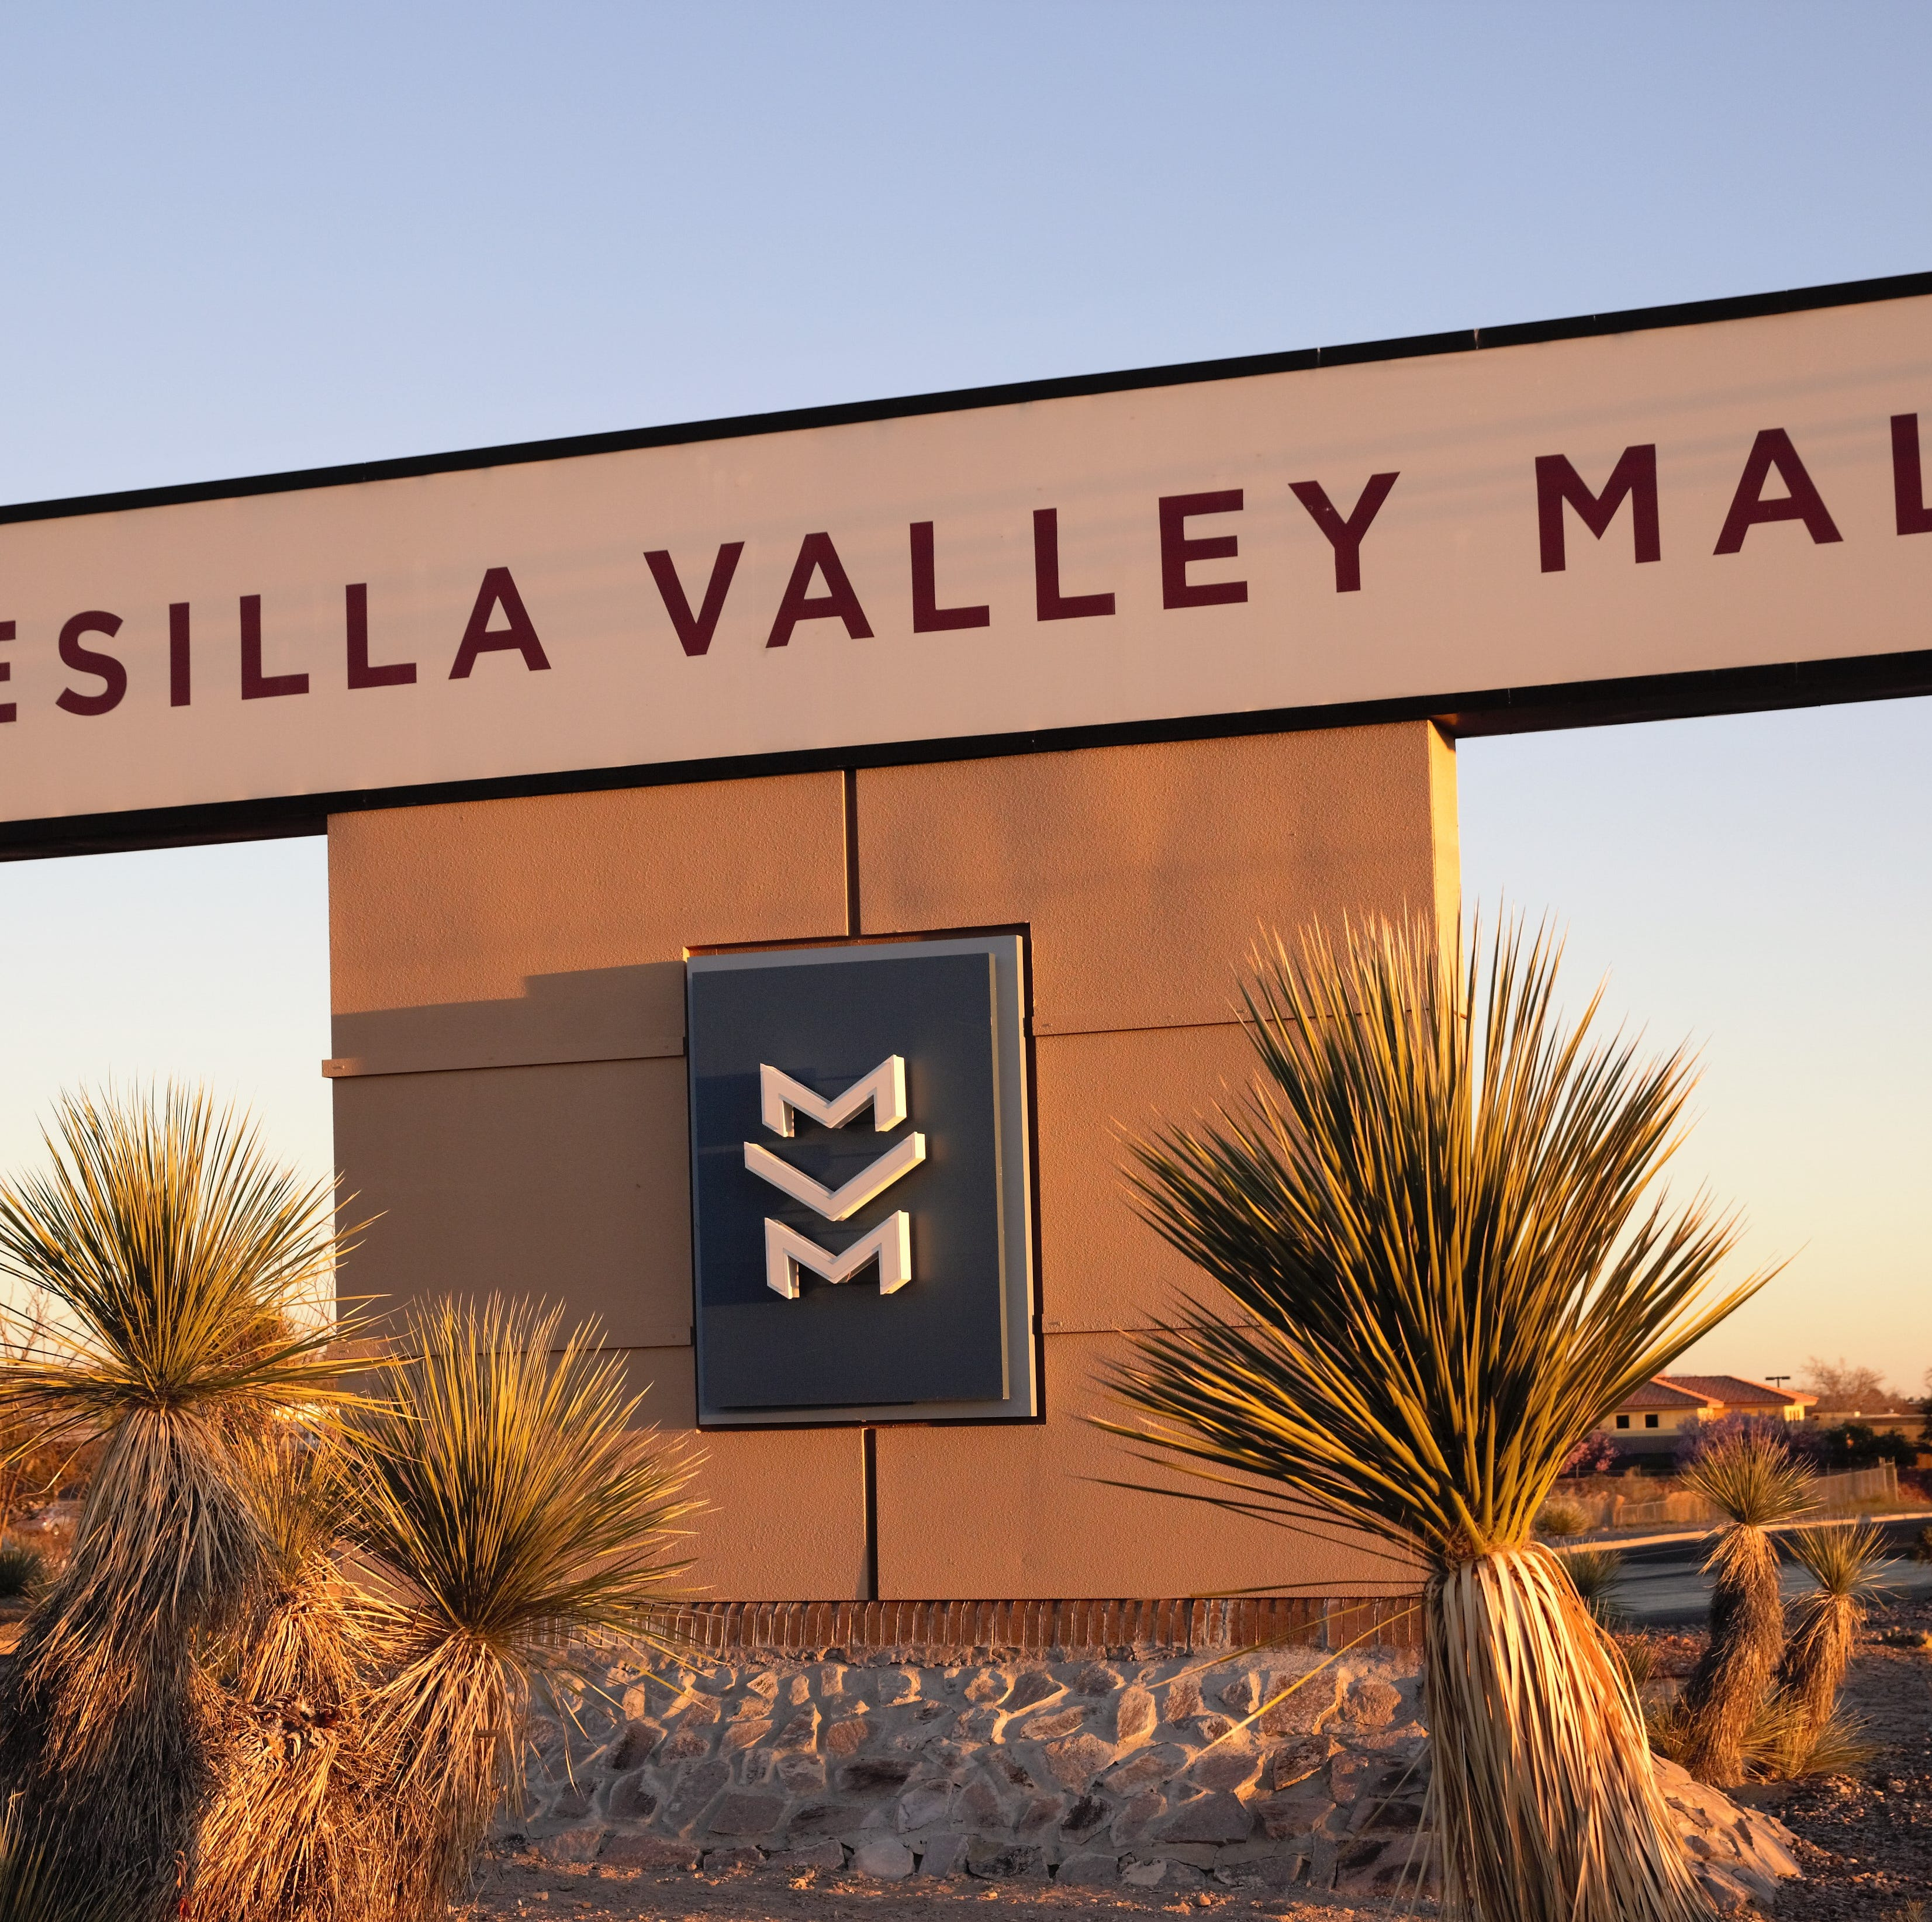 3 stores to watch for at Mesilla Valley Mall in 2019